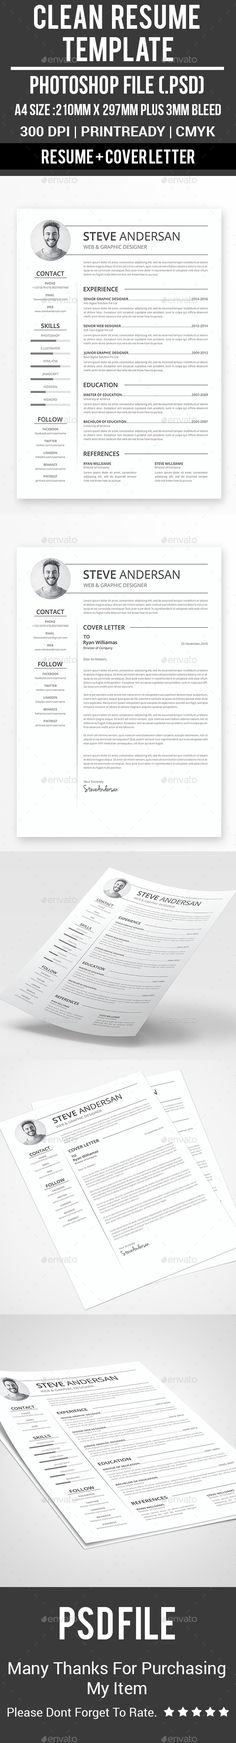 Resume template infographic and adobe yelopaper Images